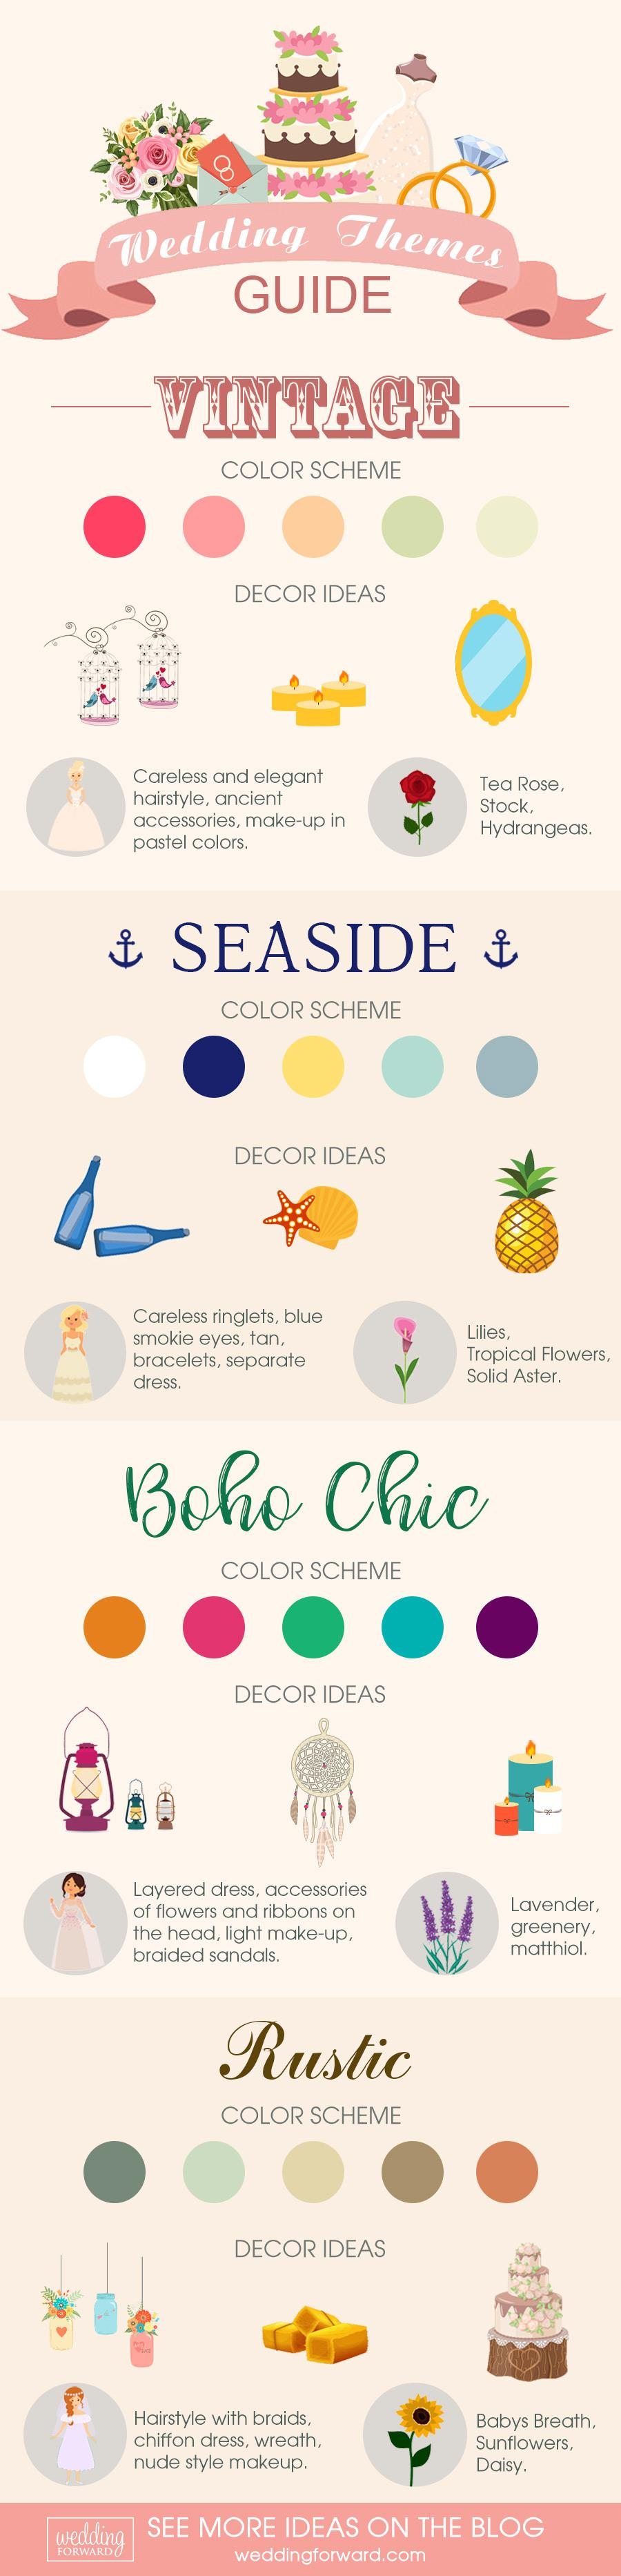 infographic: theme ideas: beach, vintage, boho, rustic